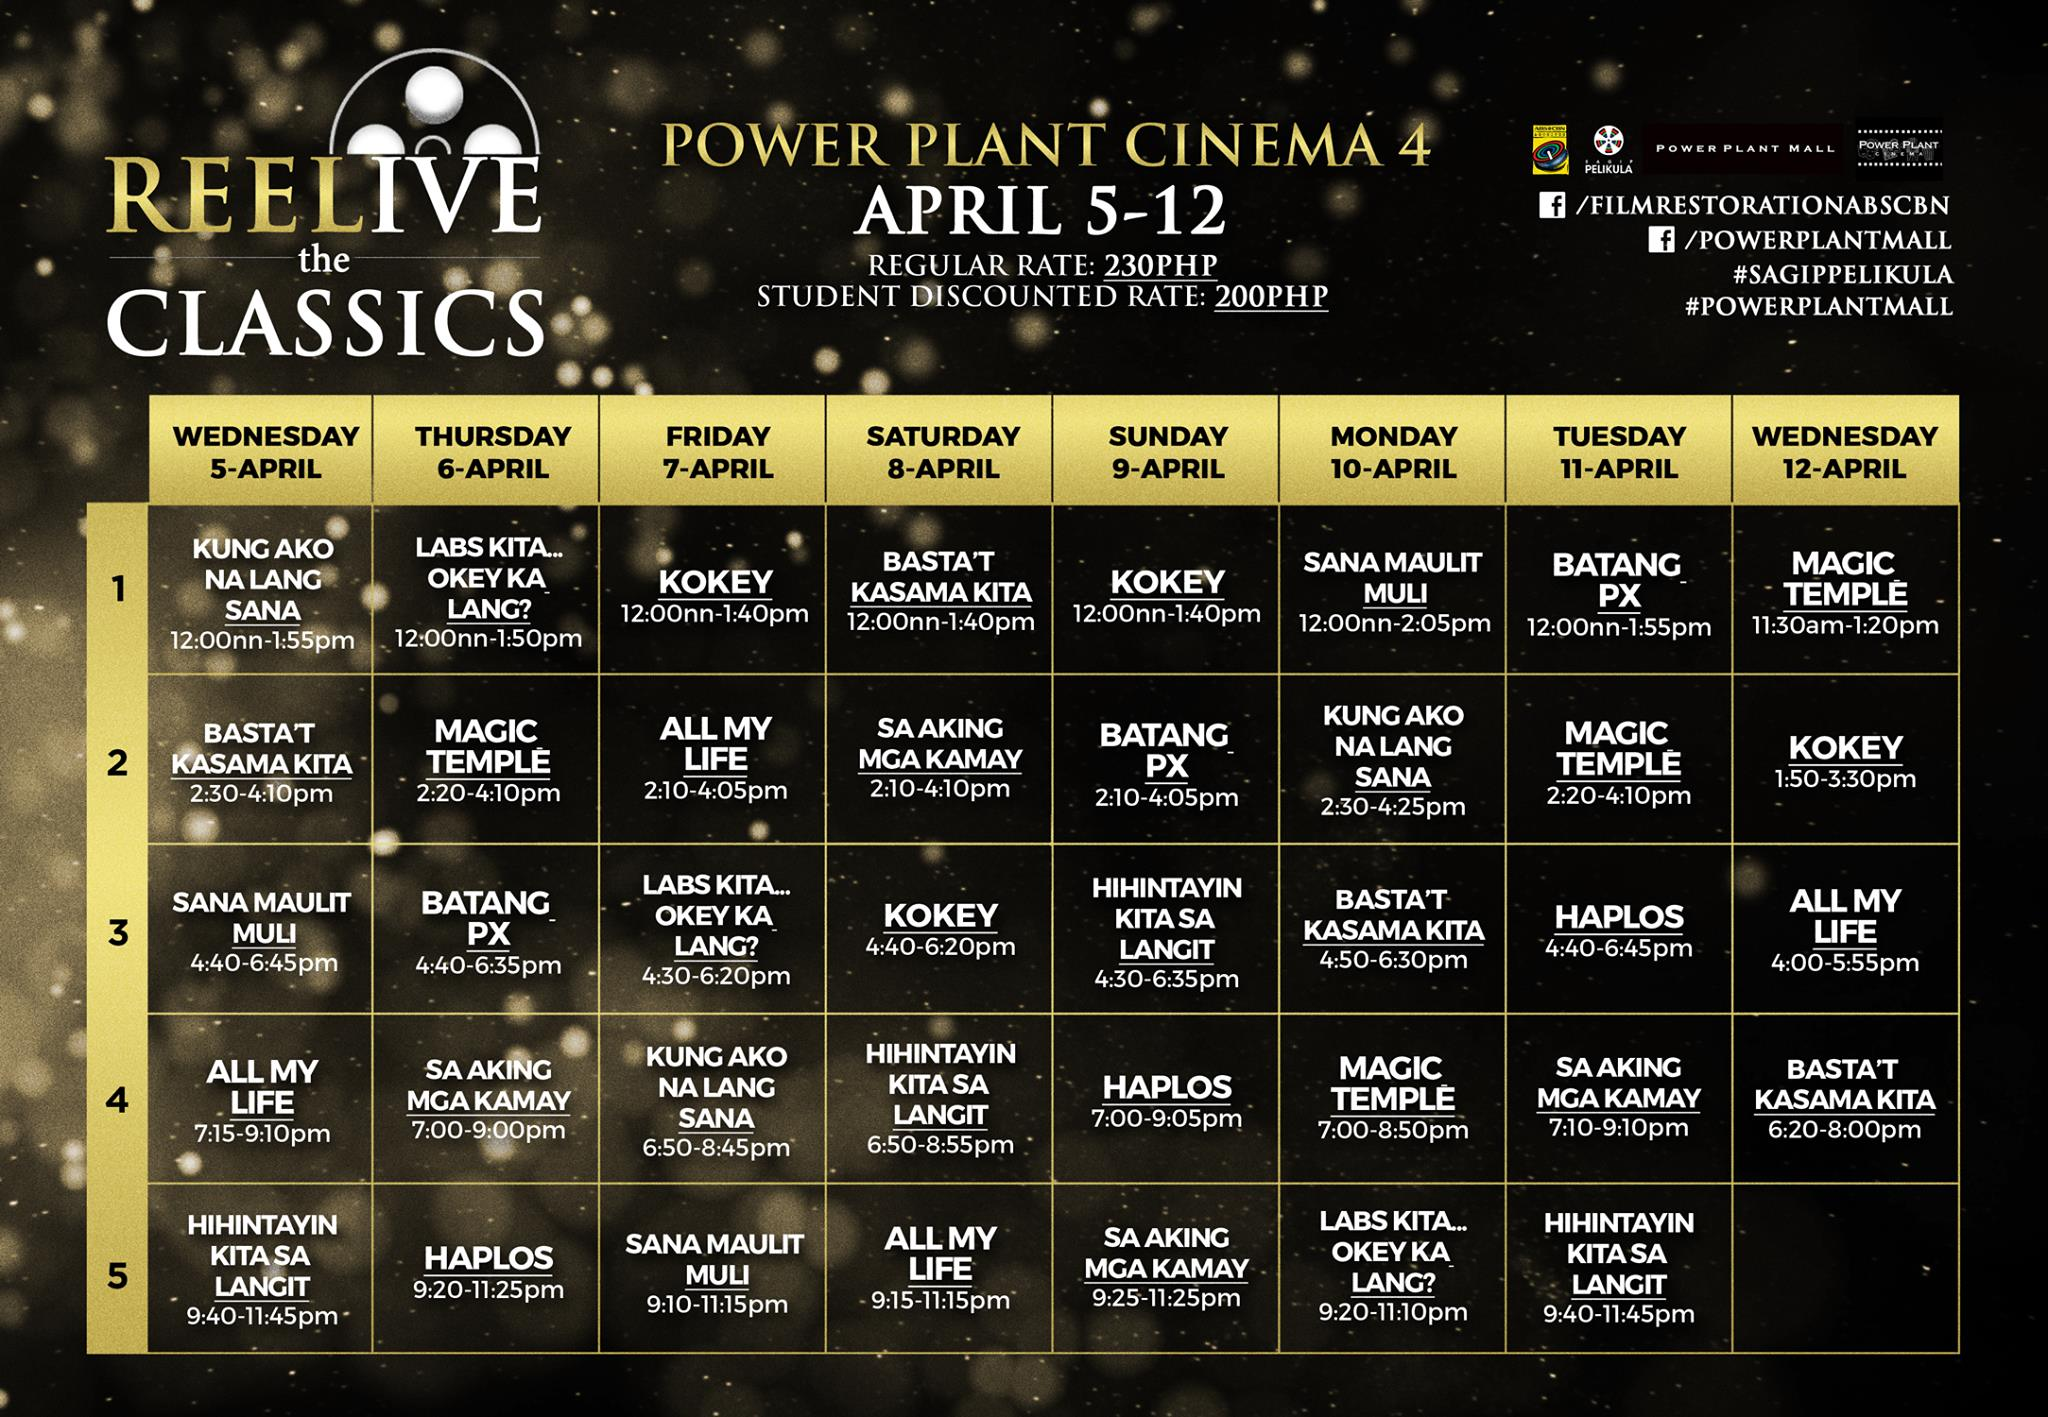 "Abs-Cbn Film Restoration Page Liked · March 20 ·    REELIVE THE CLASSICS once more at Rockwell Power Plant Mall Cinema 4 from April 5 – 12! Here are the details and screening times of the restored films we are all excited to watch on the big screen once more! #SagipPelikula #ABSCBNFilmRestoration #PowerPlantMall #REELiveTheClassics — with Sharon Cuneta, Marc Solis, Aga Muhlach, Vilma Santos - The Star for All Seasons, Jerry Lopez Sineneng, Sharon Cuneta Mega Star fan page, Kristine Hermosa-Sotto, Dawn Zulueta, Dayanara Torres, Richard ""GOMA"" Gomez, Patrick Garcia, Chin-Chin Gutierrez, Edu Manzano, Lea Salonga, Jolina Magdangal, Zsa Zsa Padilla, Carlos Siguion-Reyna, Sydney Sacdalan, Junell Hernando, Carlo Aquino and Power Plant Mall."